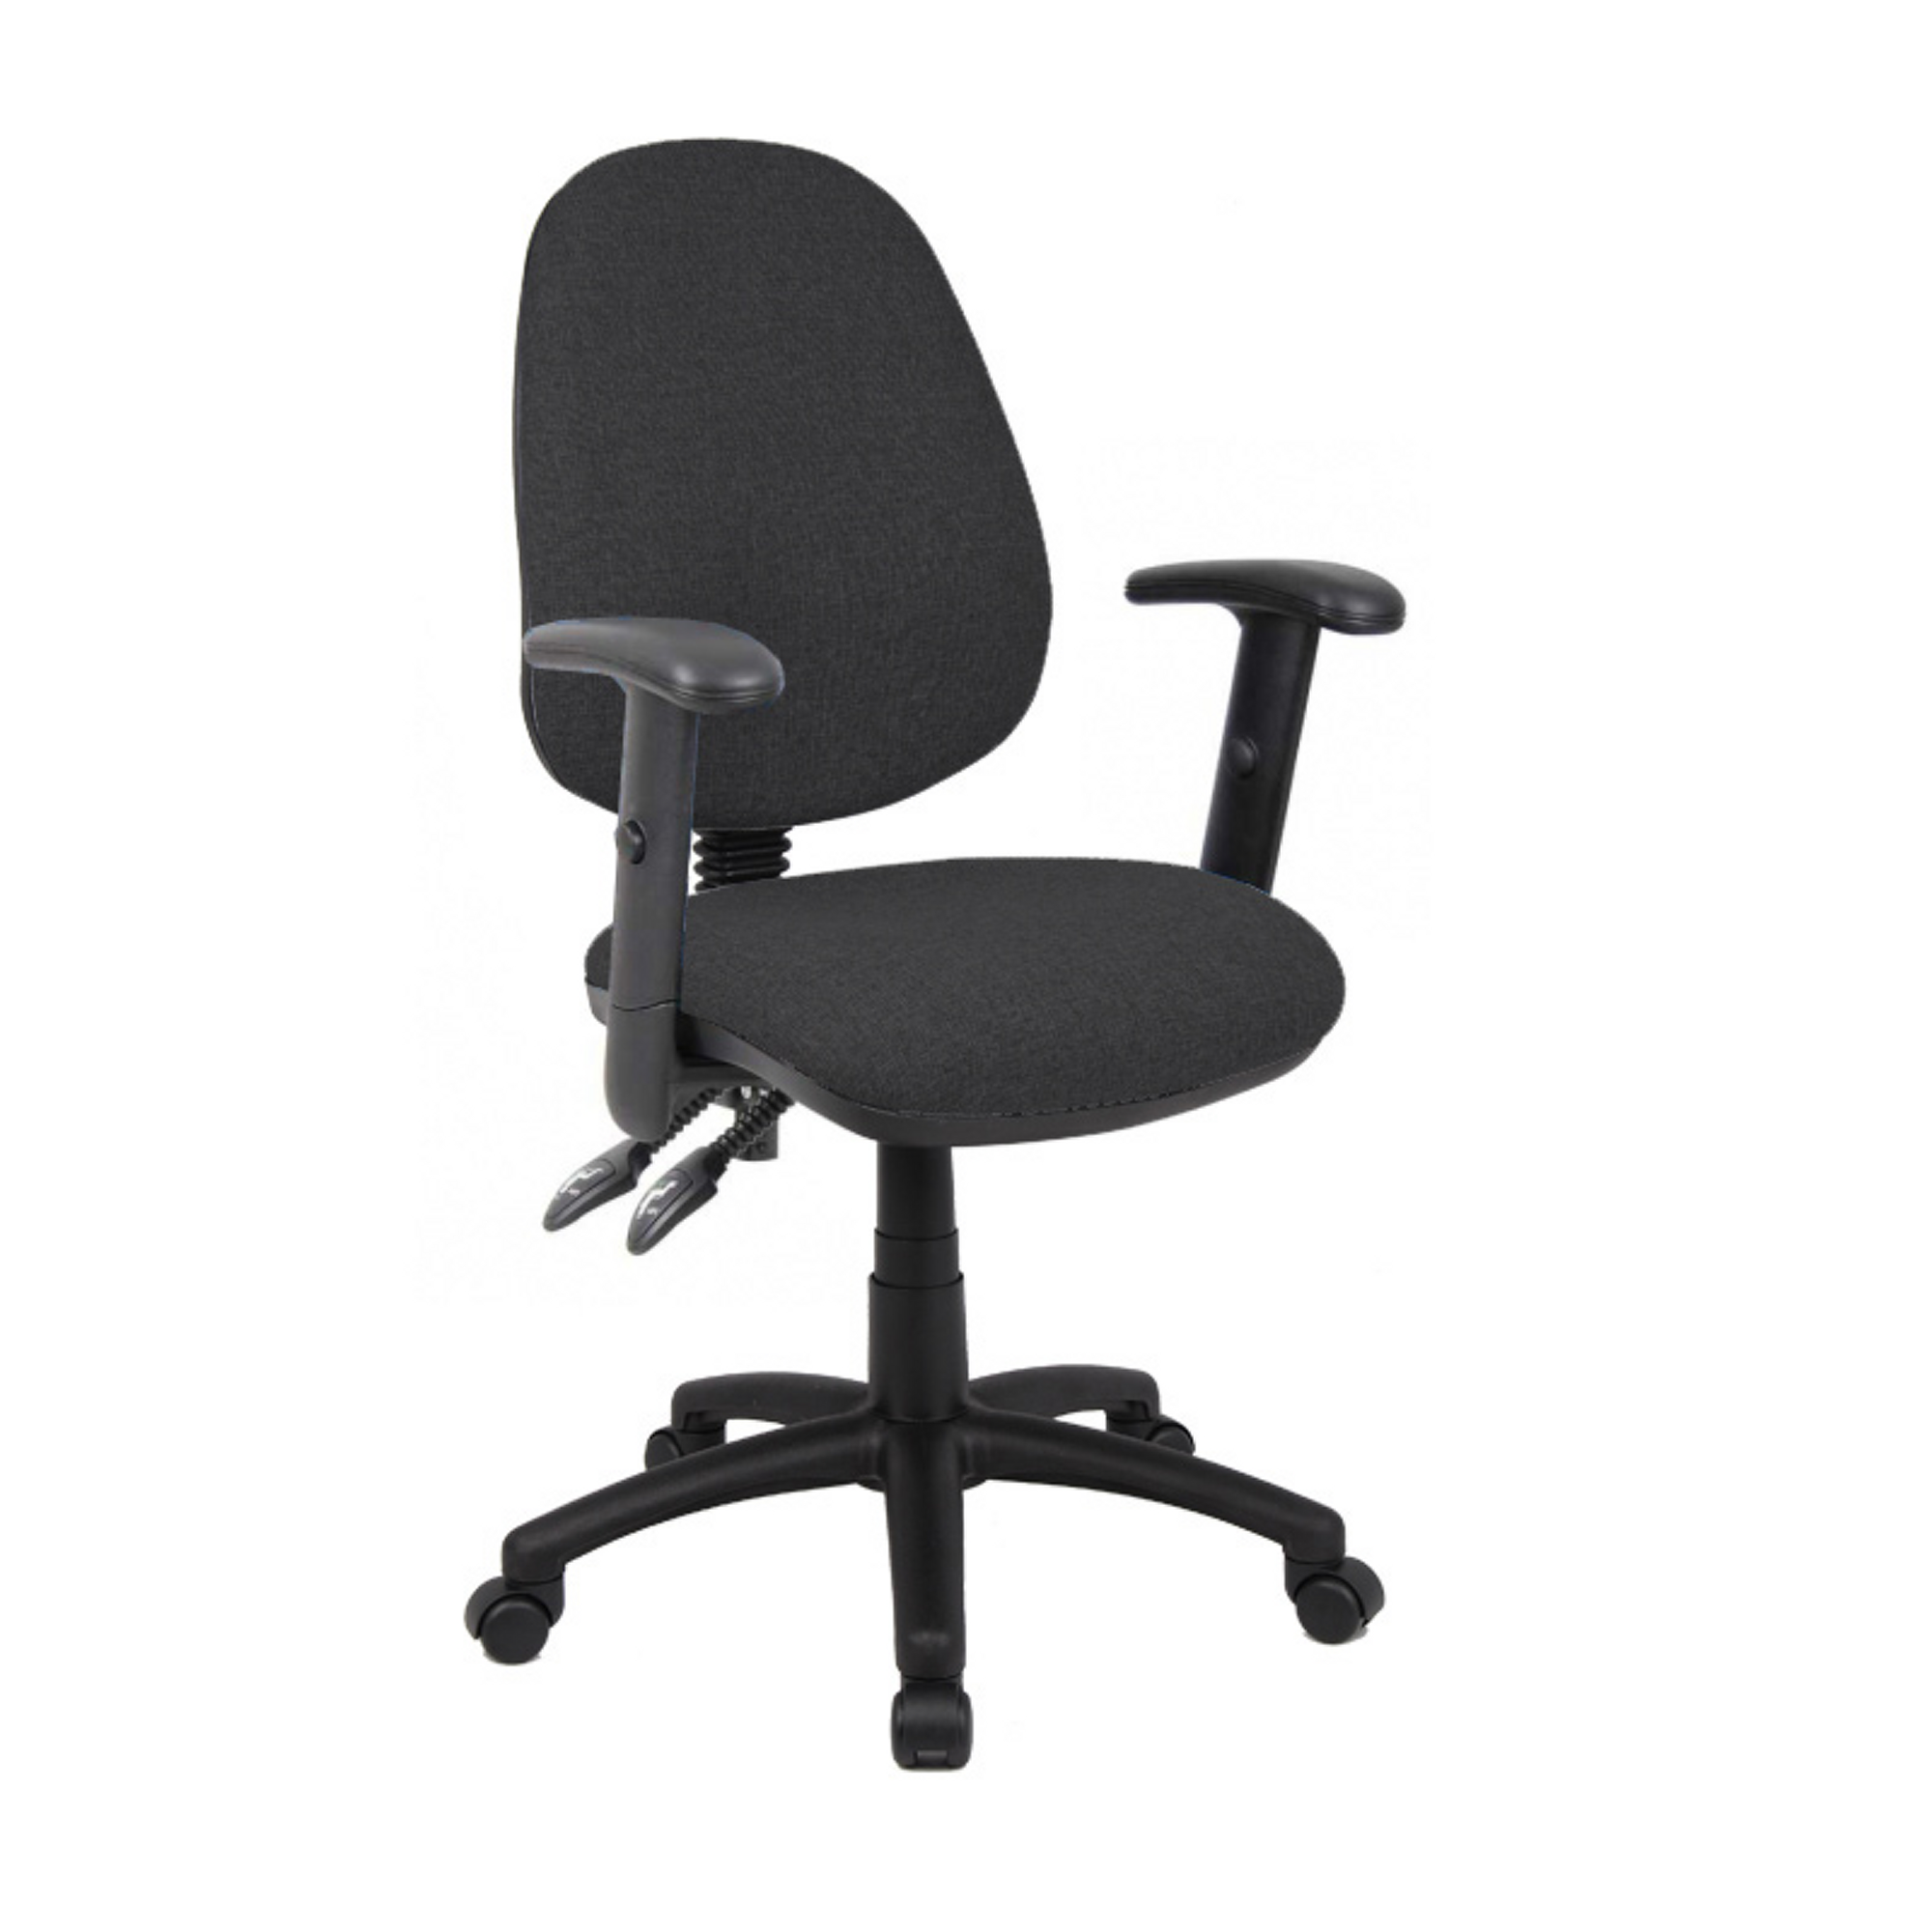 Operator Chair Adjustable Arms - Charcoal